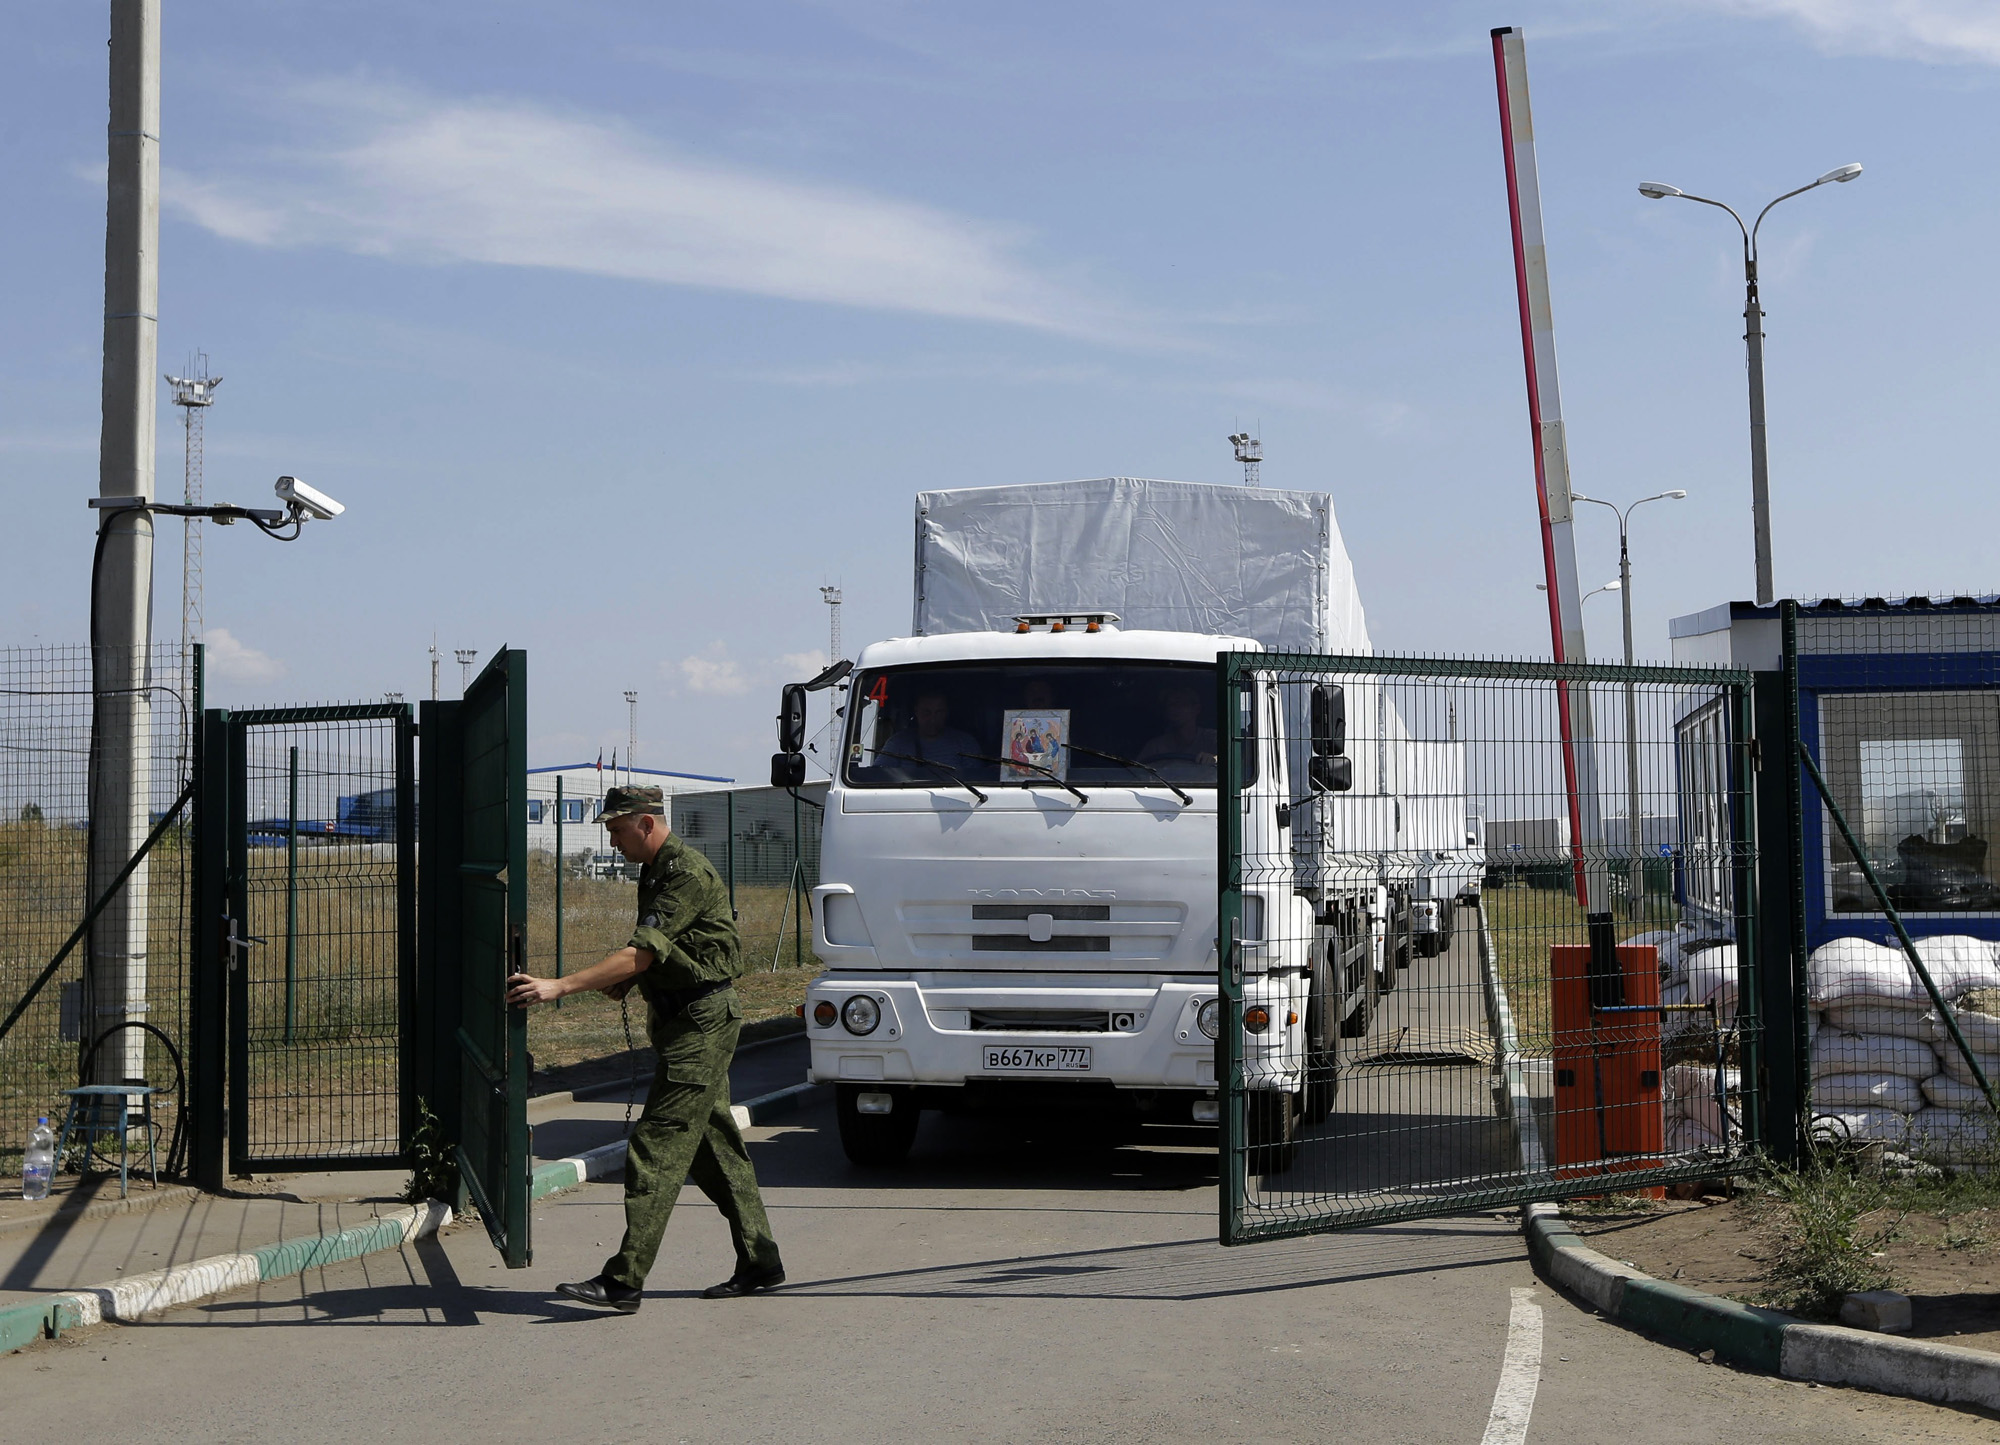 A Russian border guard opens a gate into the Ukraine for the first trucks heading into the country from the Russian town of Donetsk, Rostov-on-Don region, Russia,  Aug. 22, 2014.